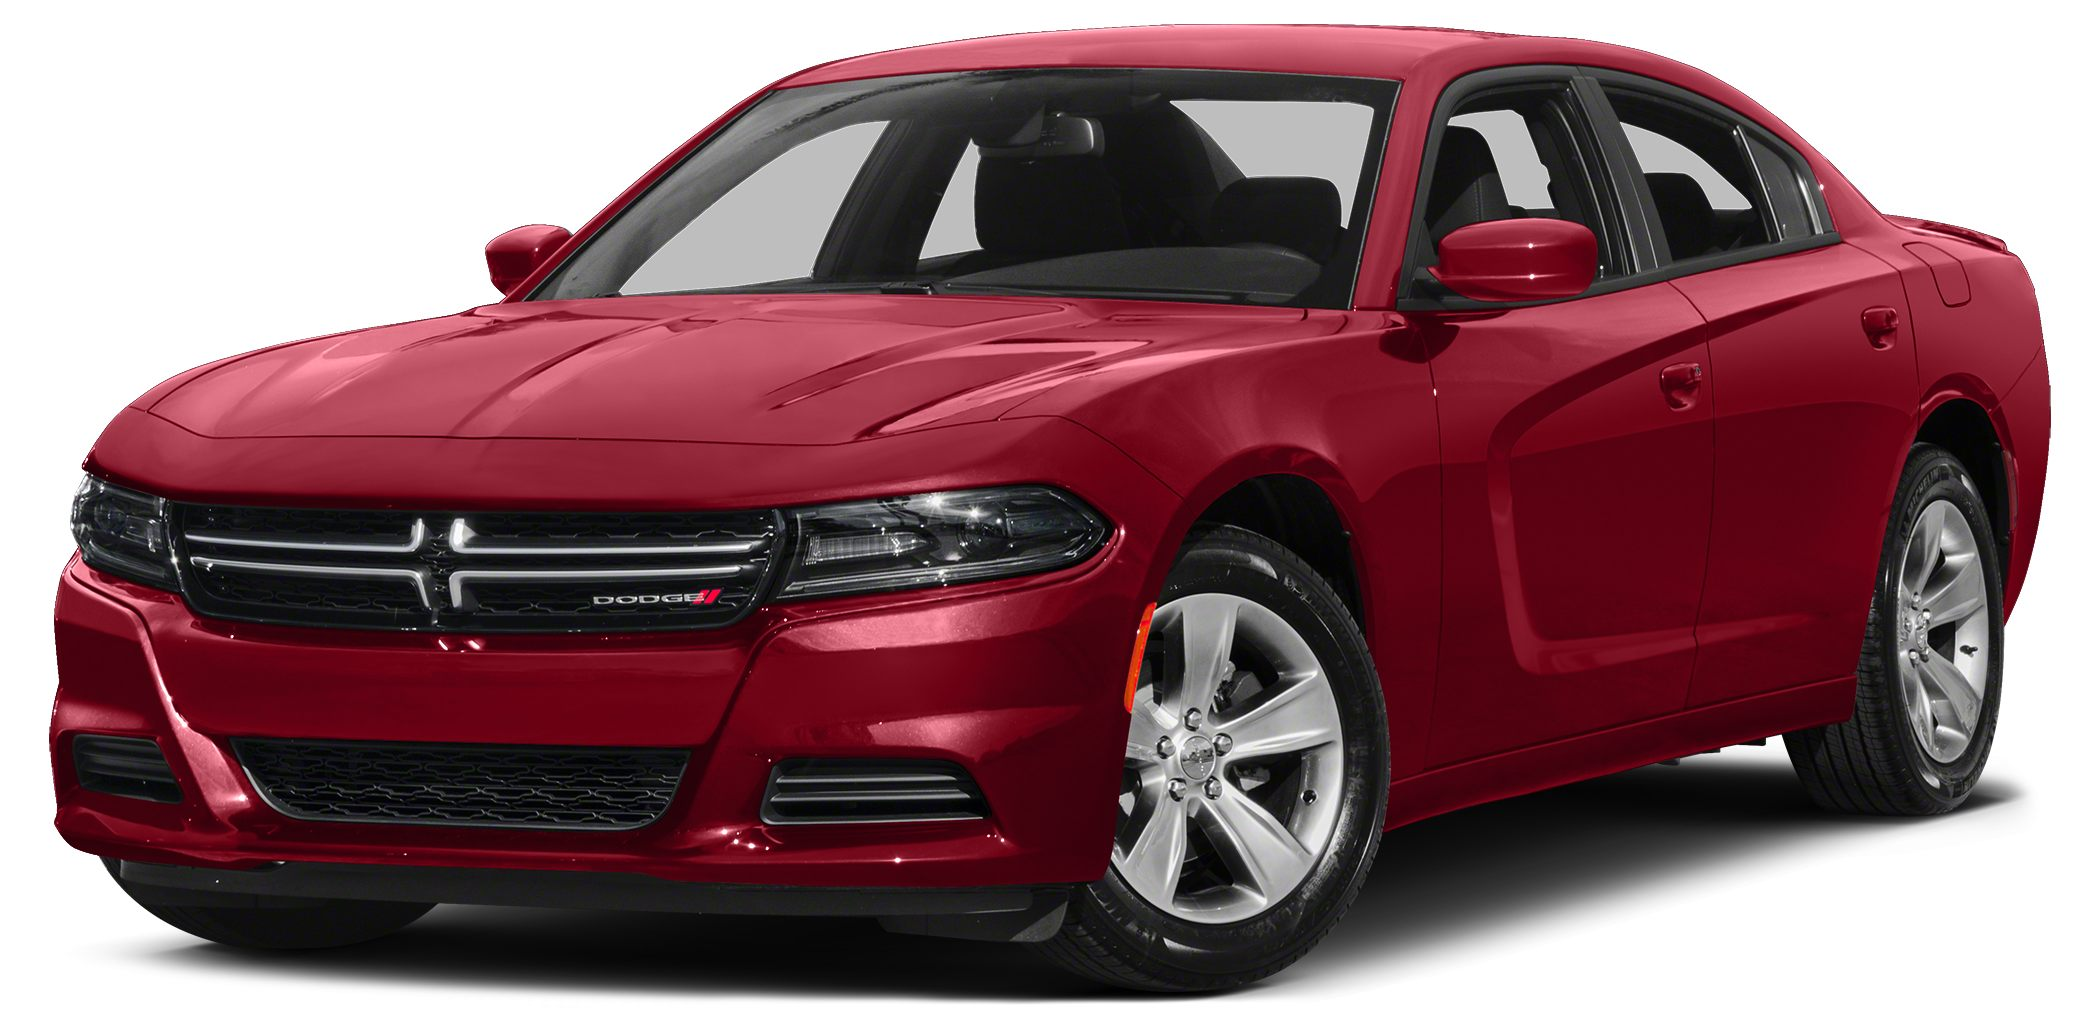 2015 Dodge Charger SXT Easily practice safe driving with anti-lock brakes traction control and e